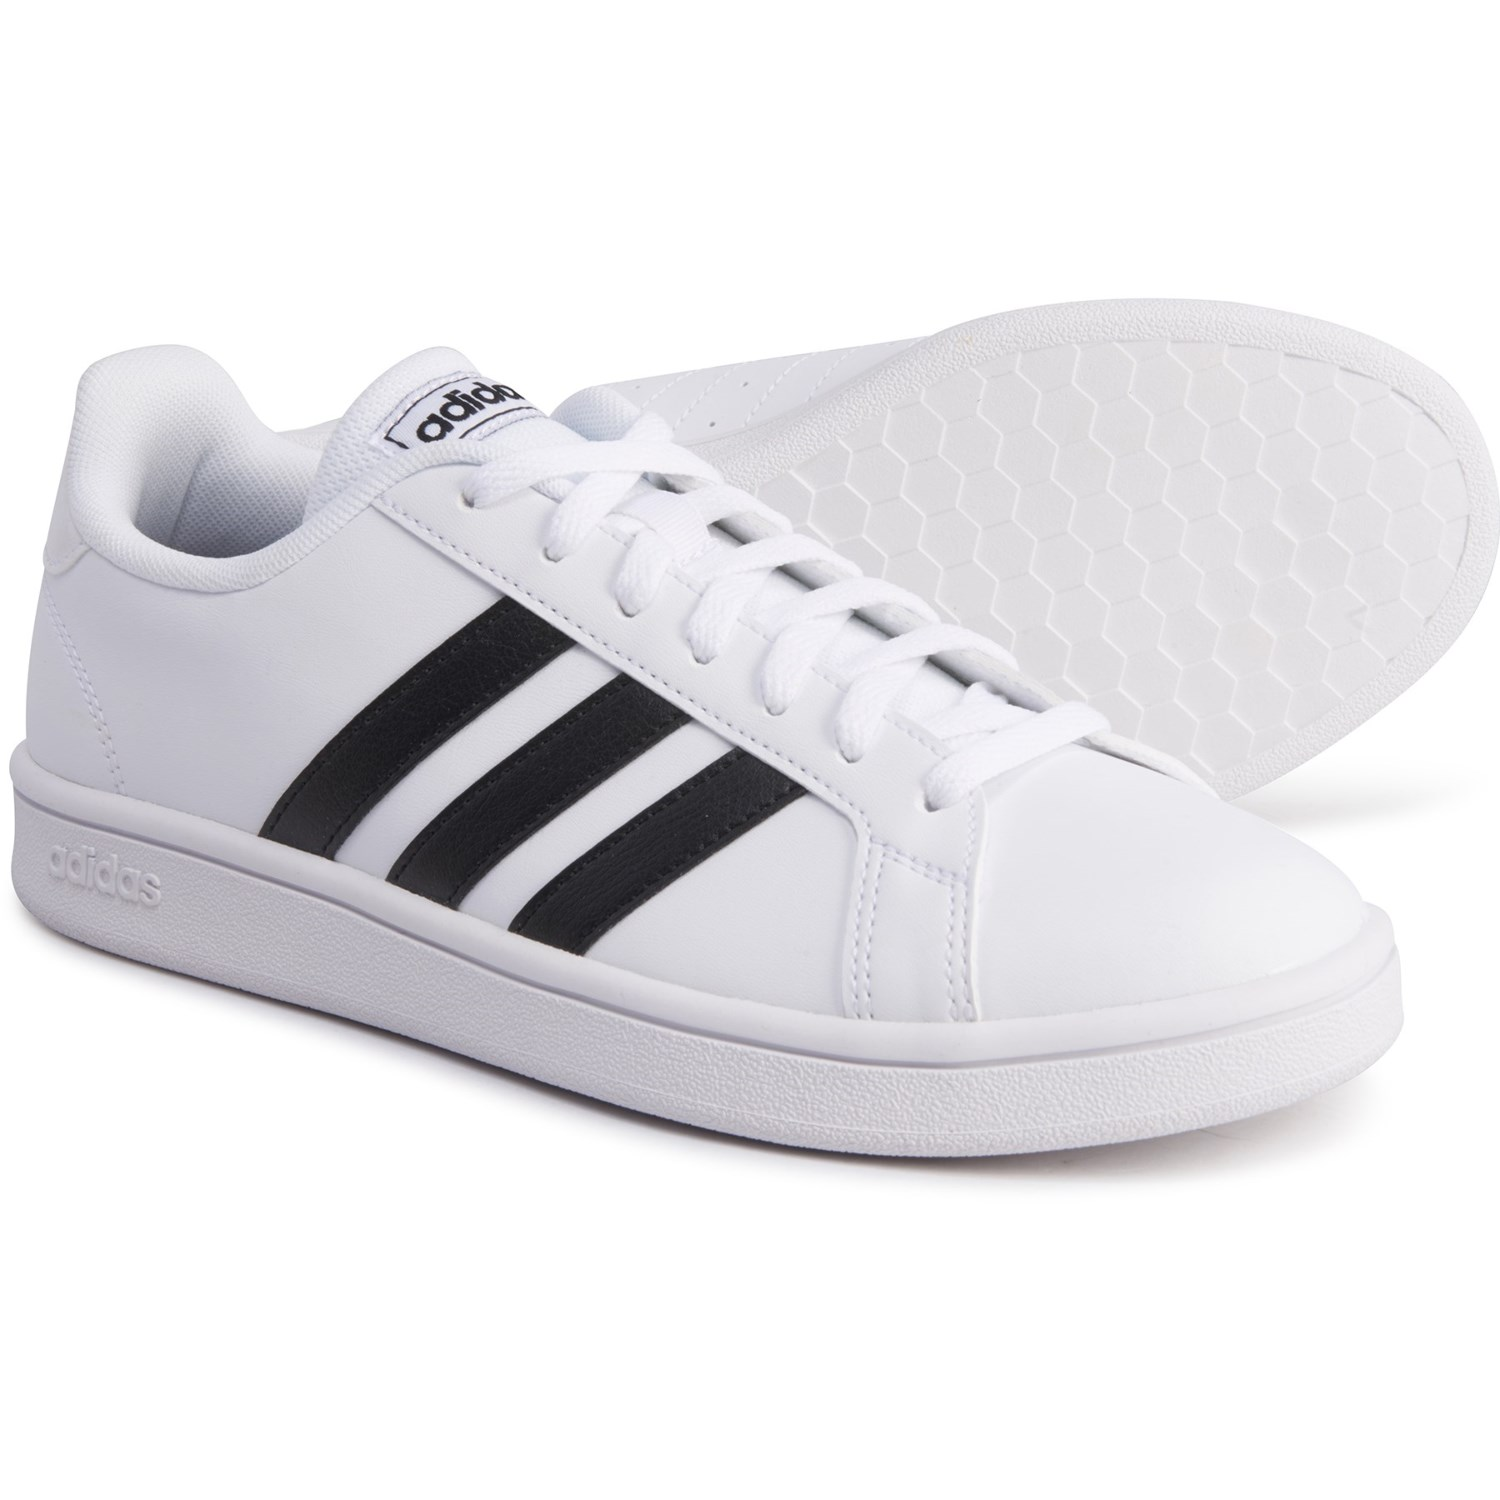 adidas Grand Court Shoes (For Women) Save 50%